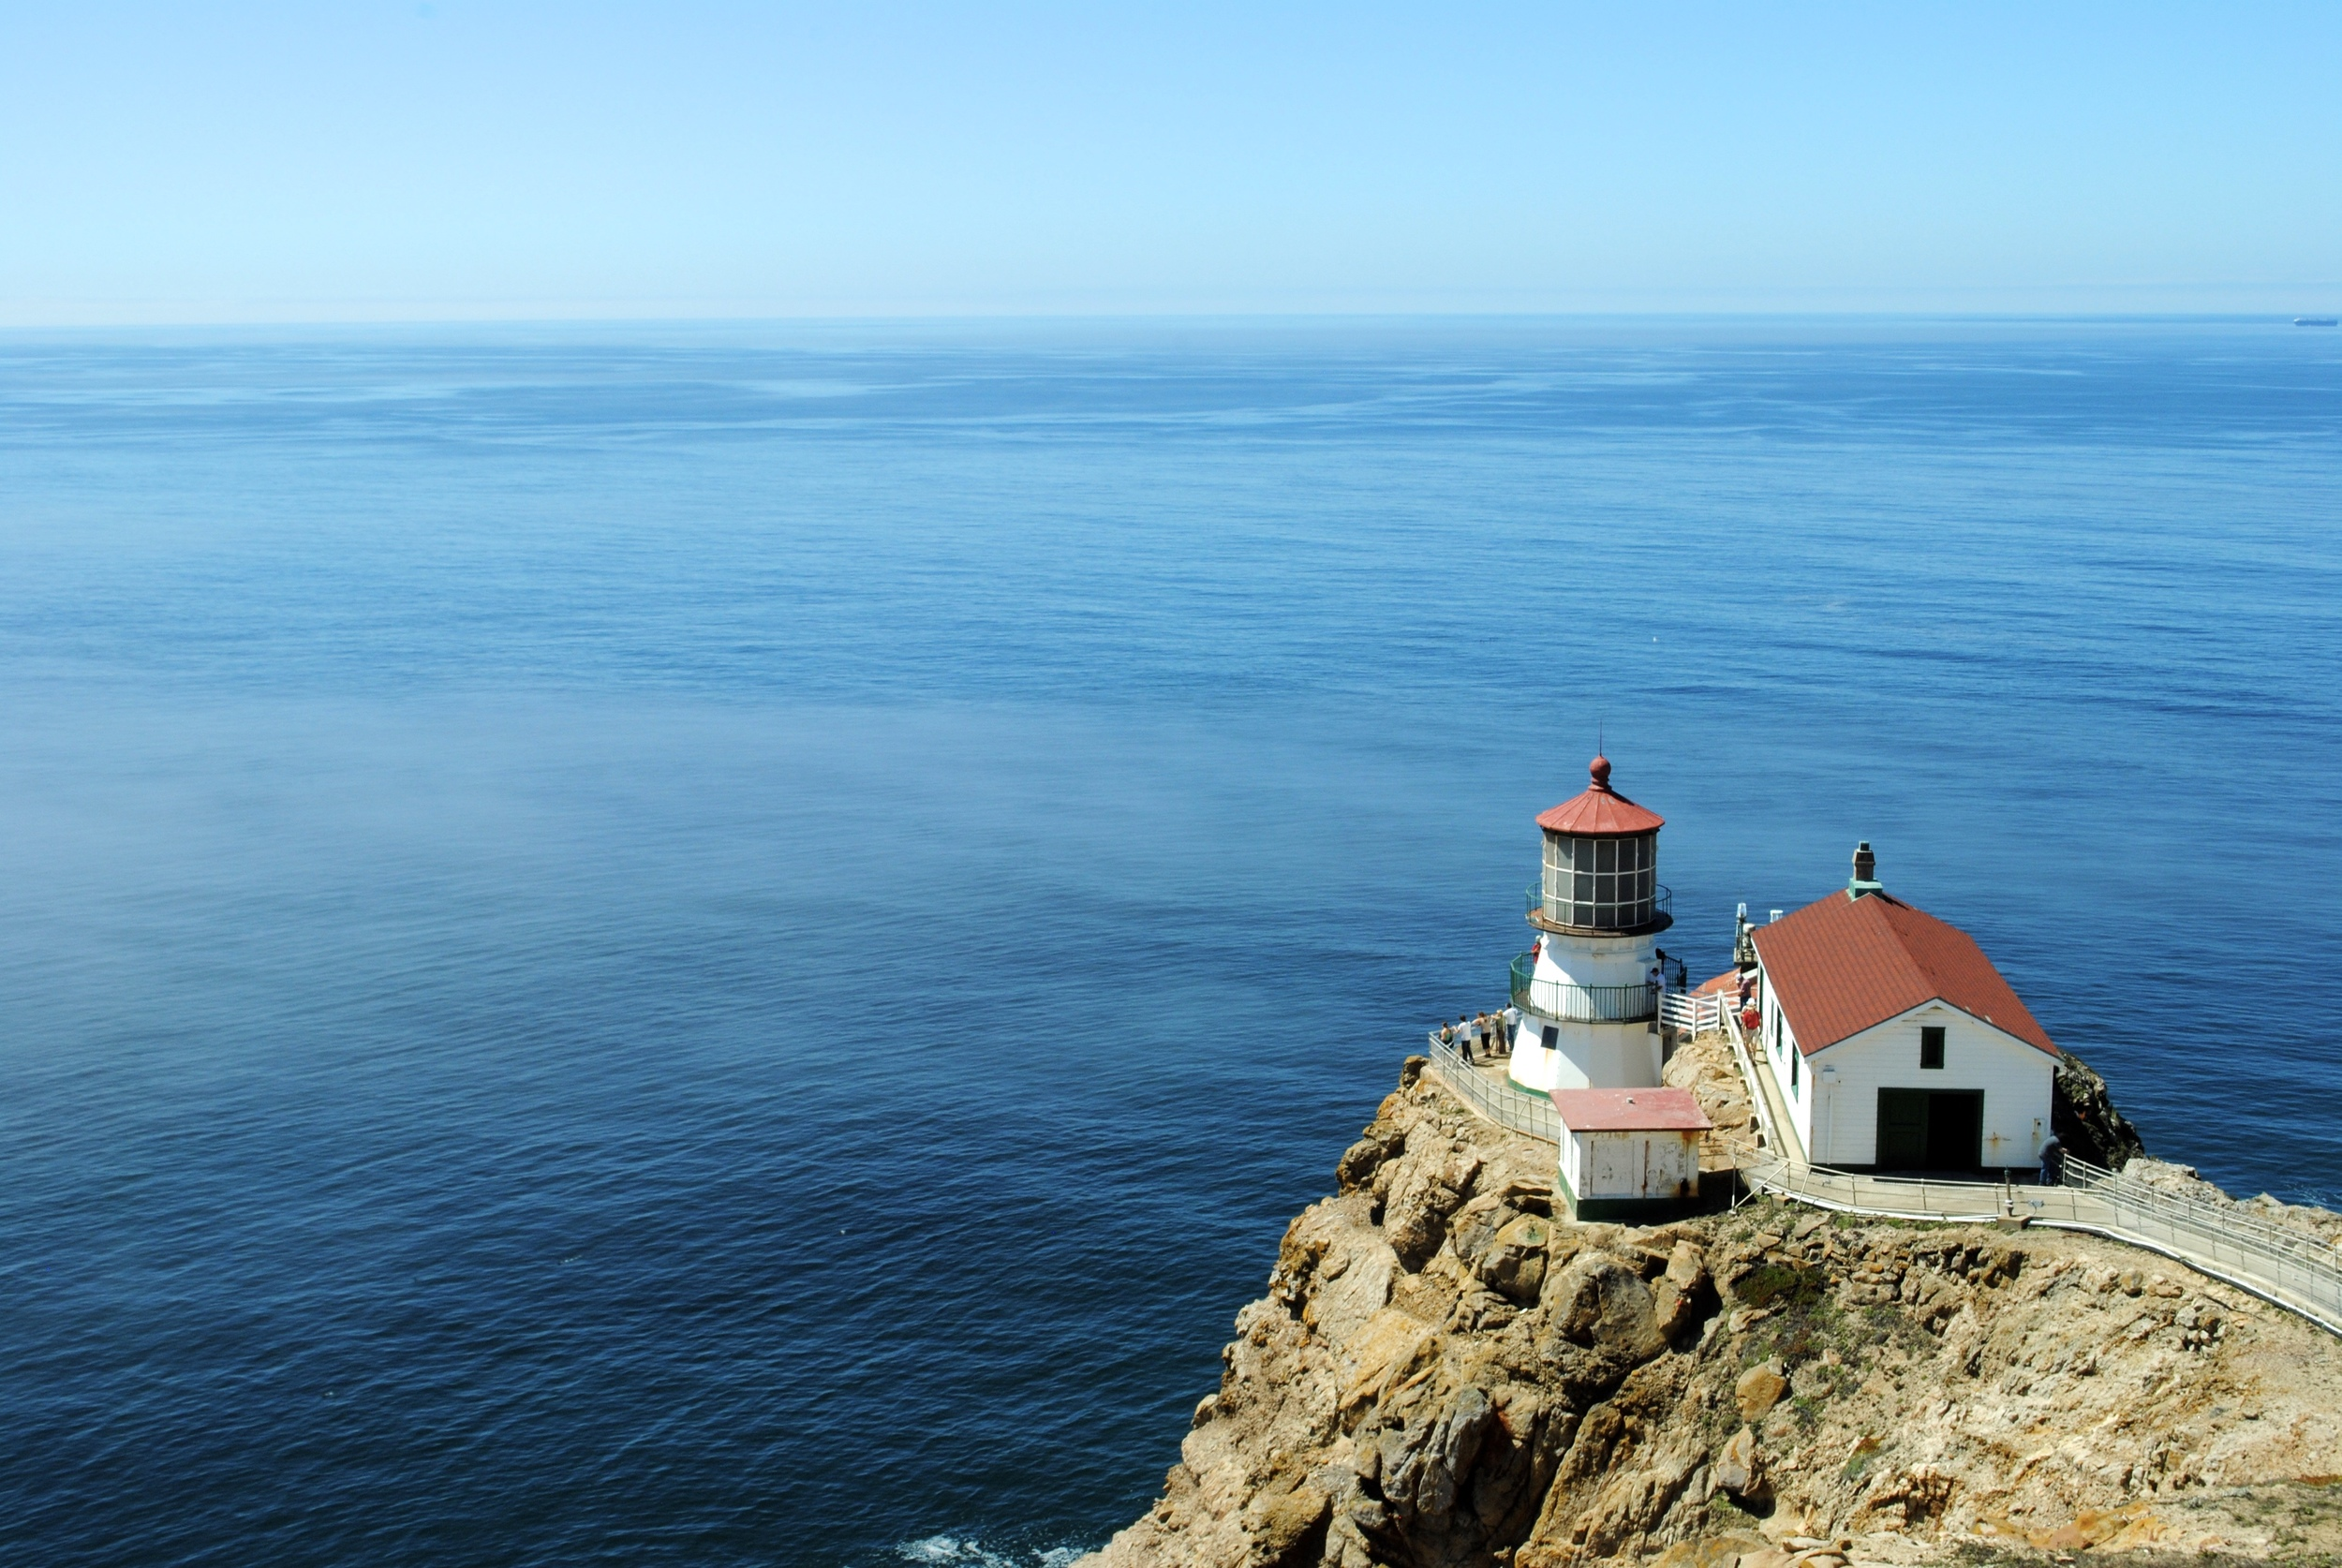 The Lighthouse at Point Reyes National Seashore; a great place to pause and reflect.